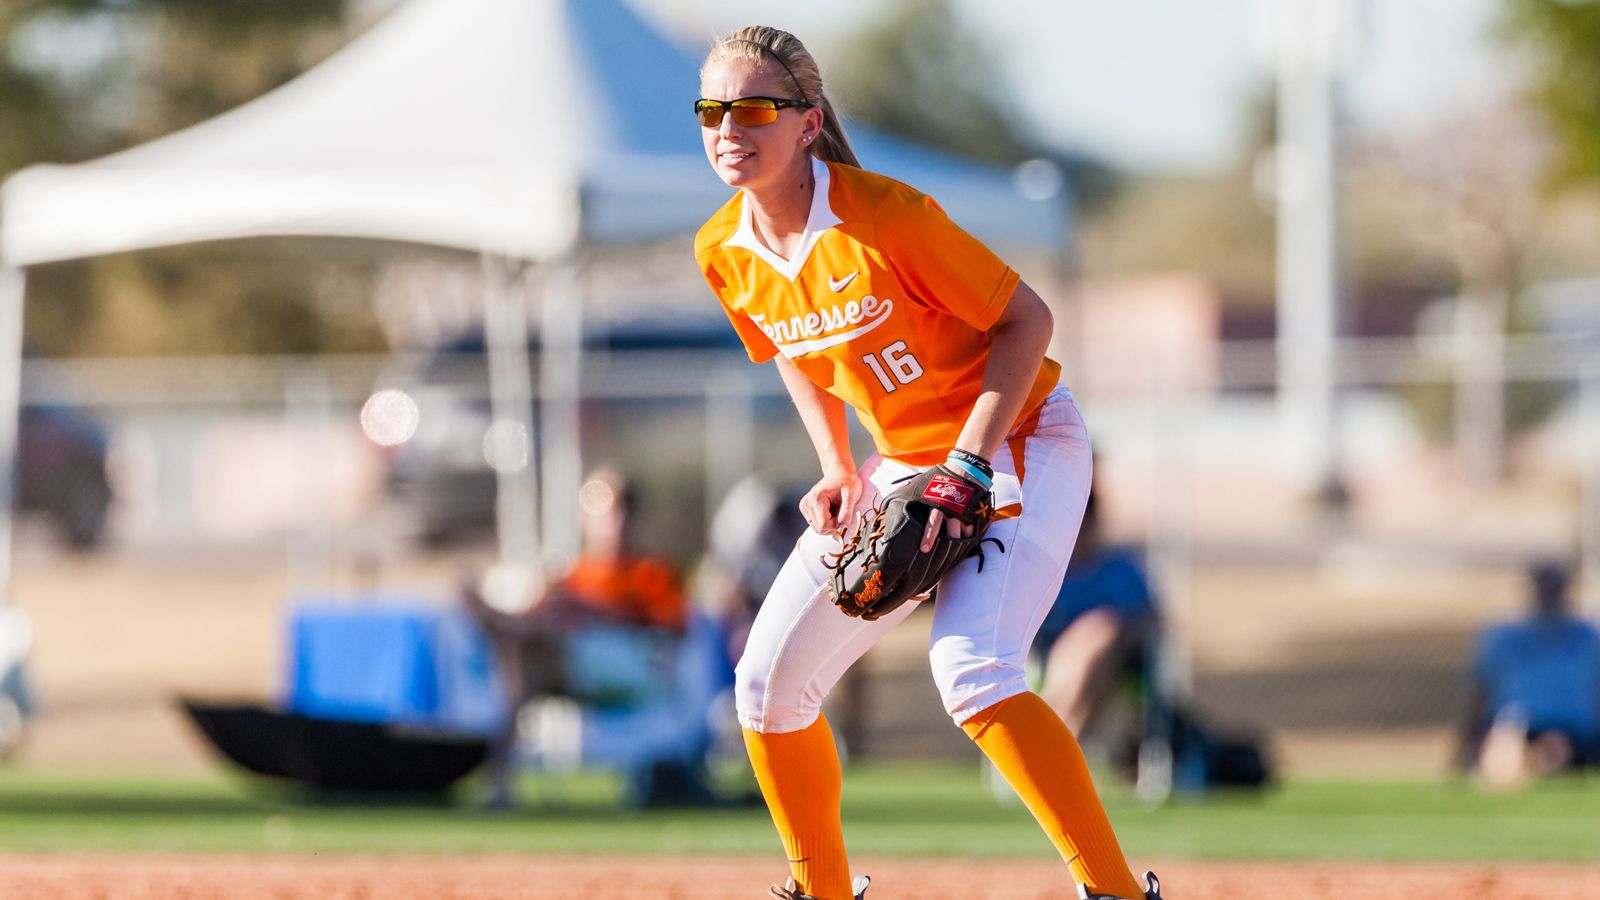 UT freshmen spark offense in 15-3 win over BYU